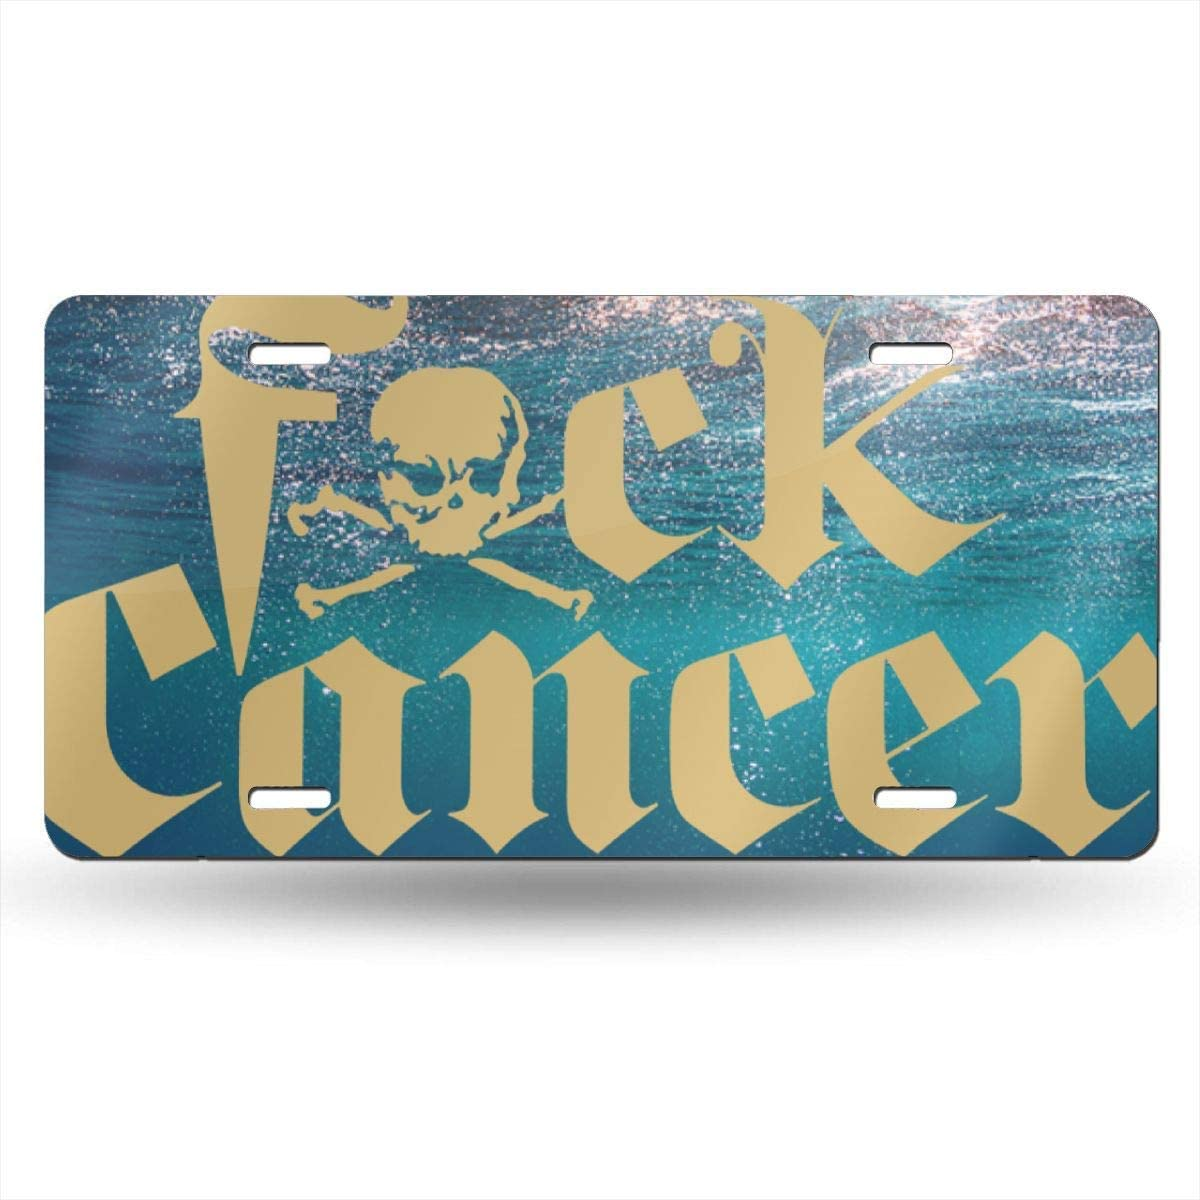 Ganheuze Fuck Cancer License Plate Car Auto Tag Aluminum Personalized Metal Sign for Car Decoration White